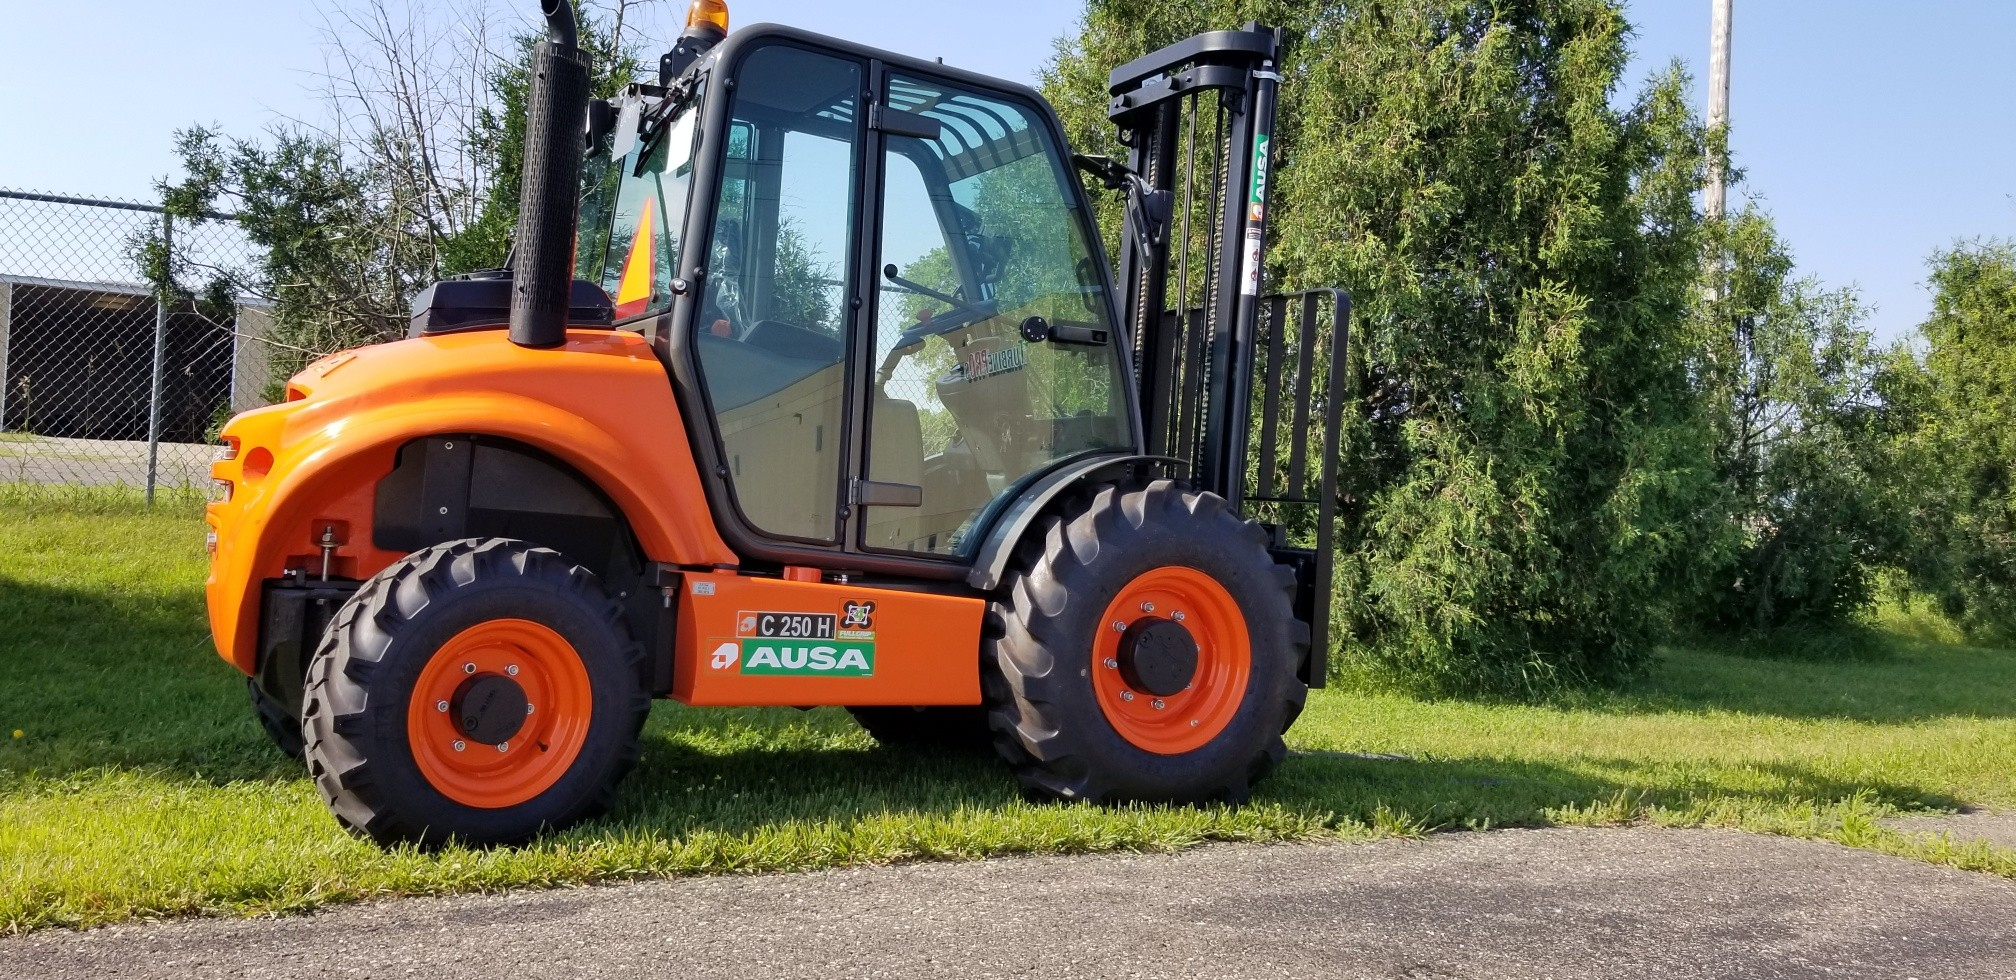 Top Notch Equipment Inc, Branch Manager Attachments, Mustang